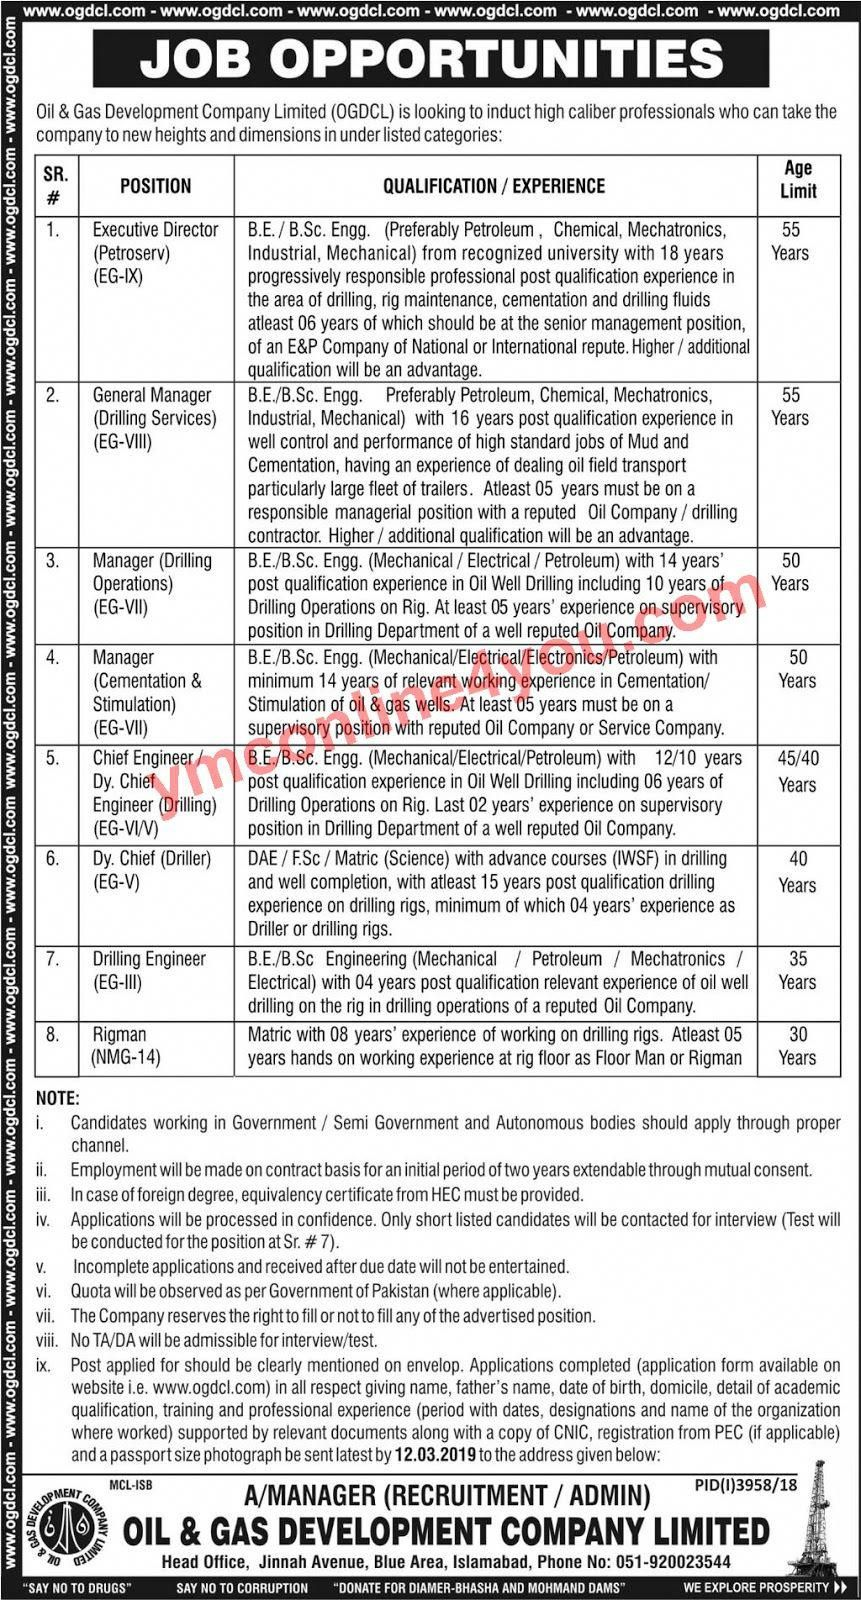 Oil & Gas Development Company Limited OGDCL Jobs 2019 | oil